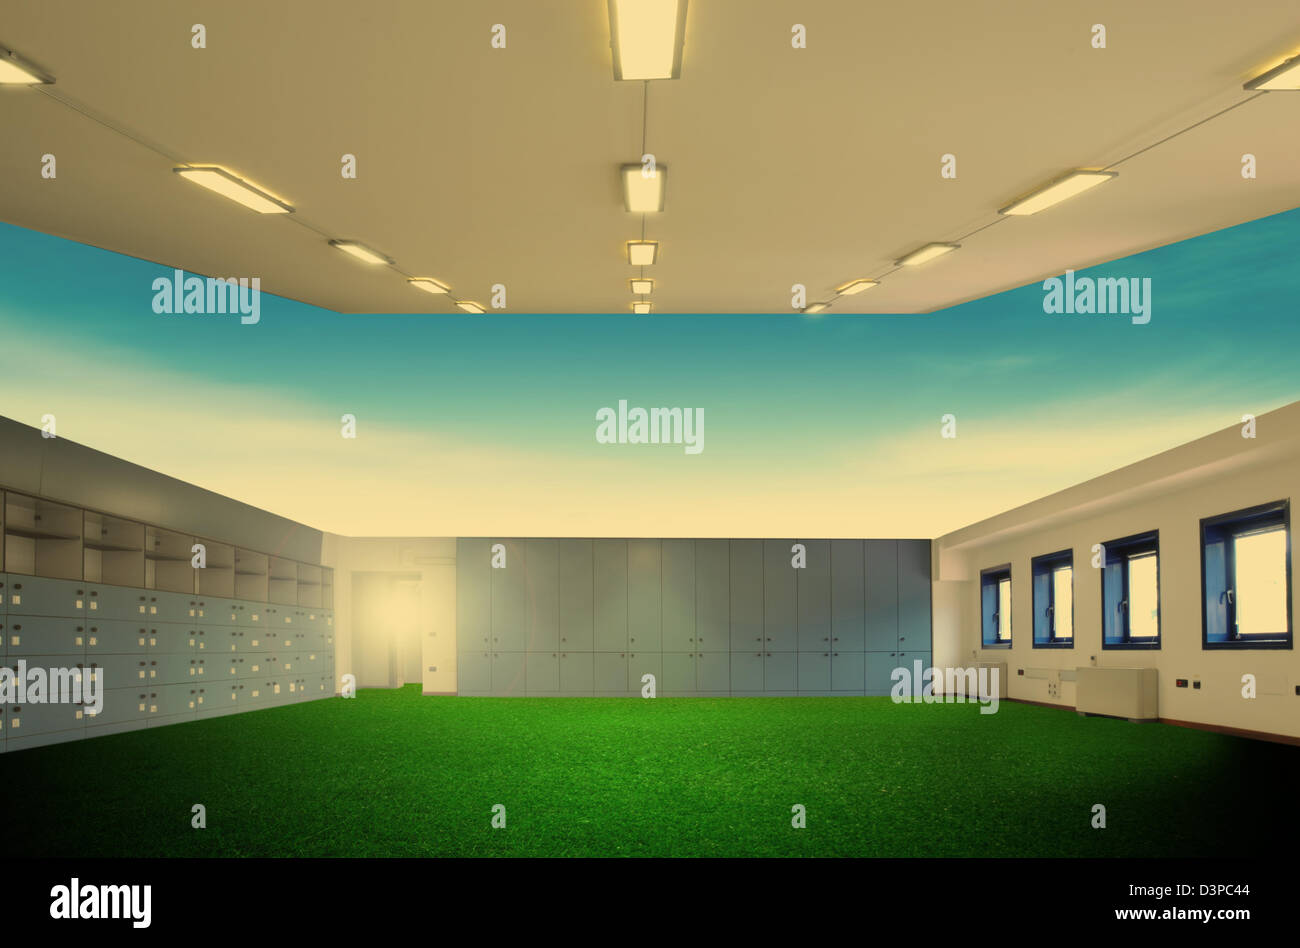 Surreal empty office with grass carpet - Stock Image